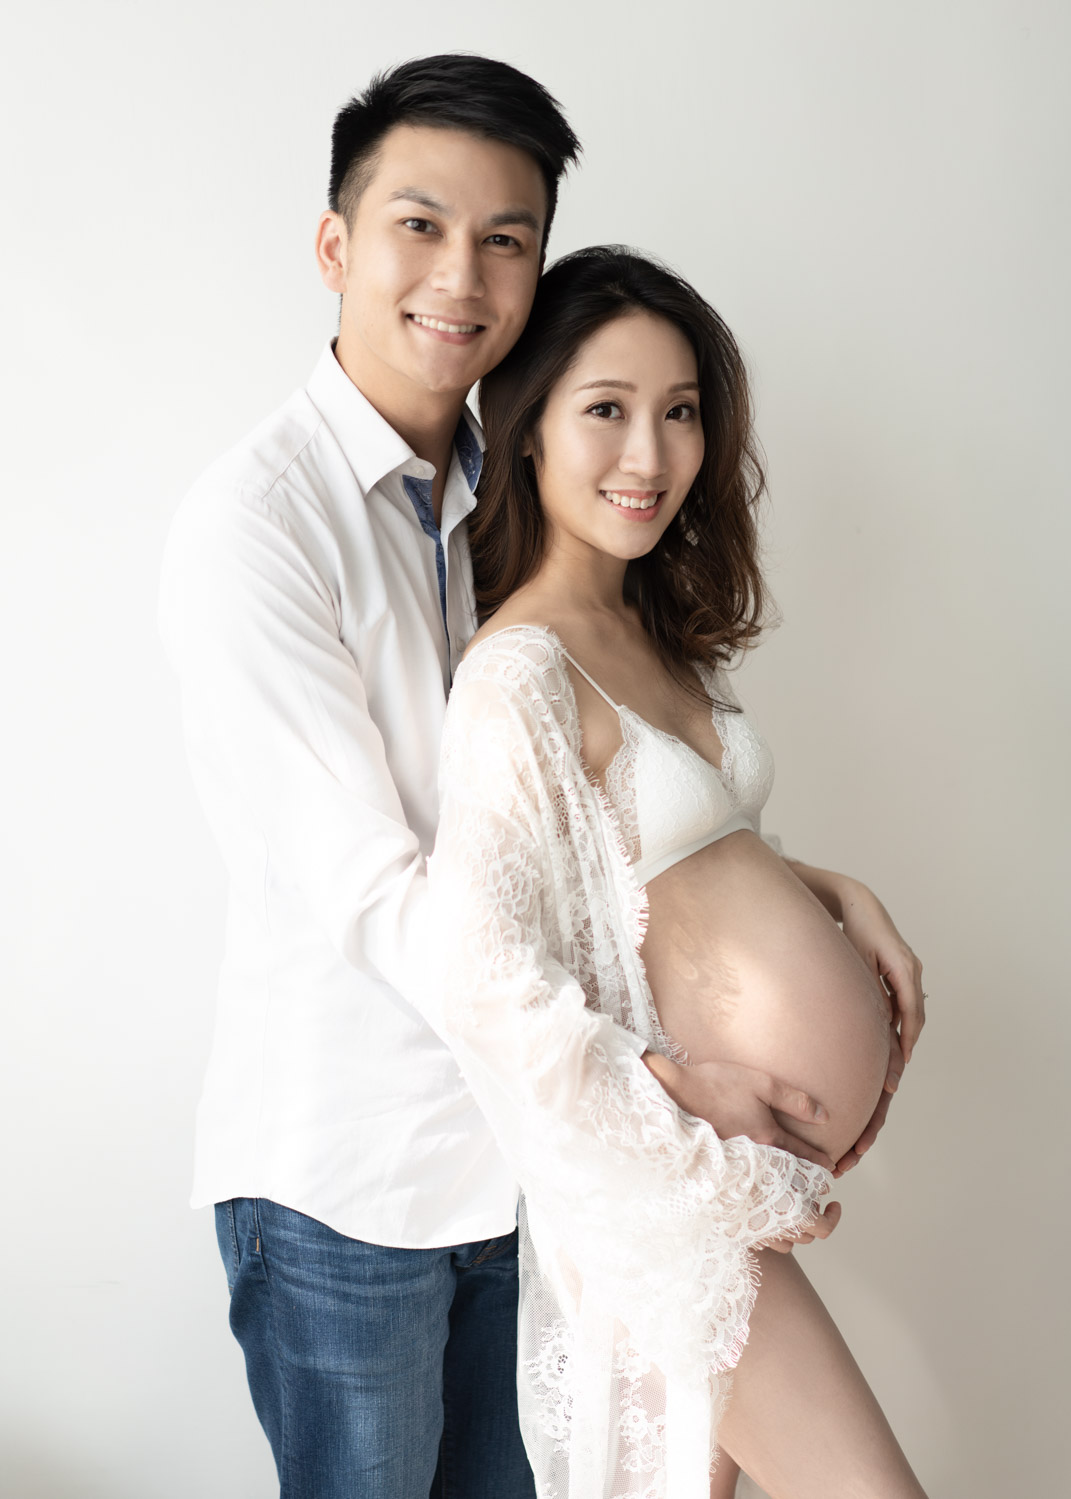 hk hong kong maternity photographer editorial style kay lai studio